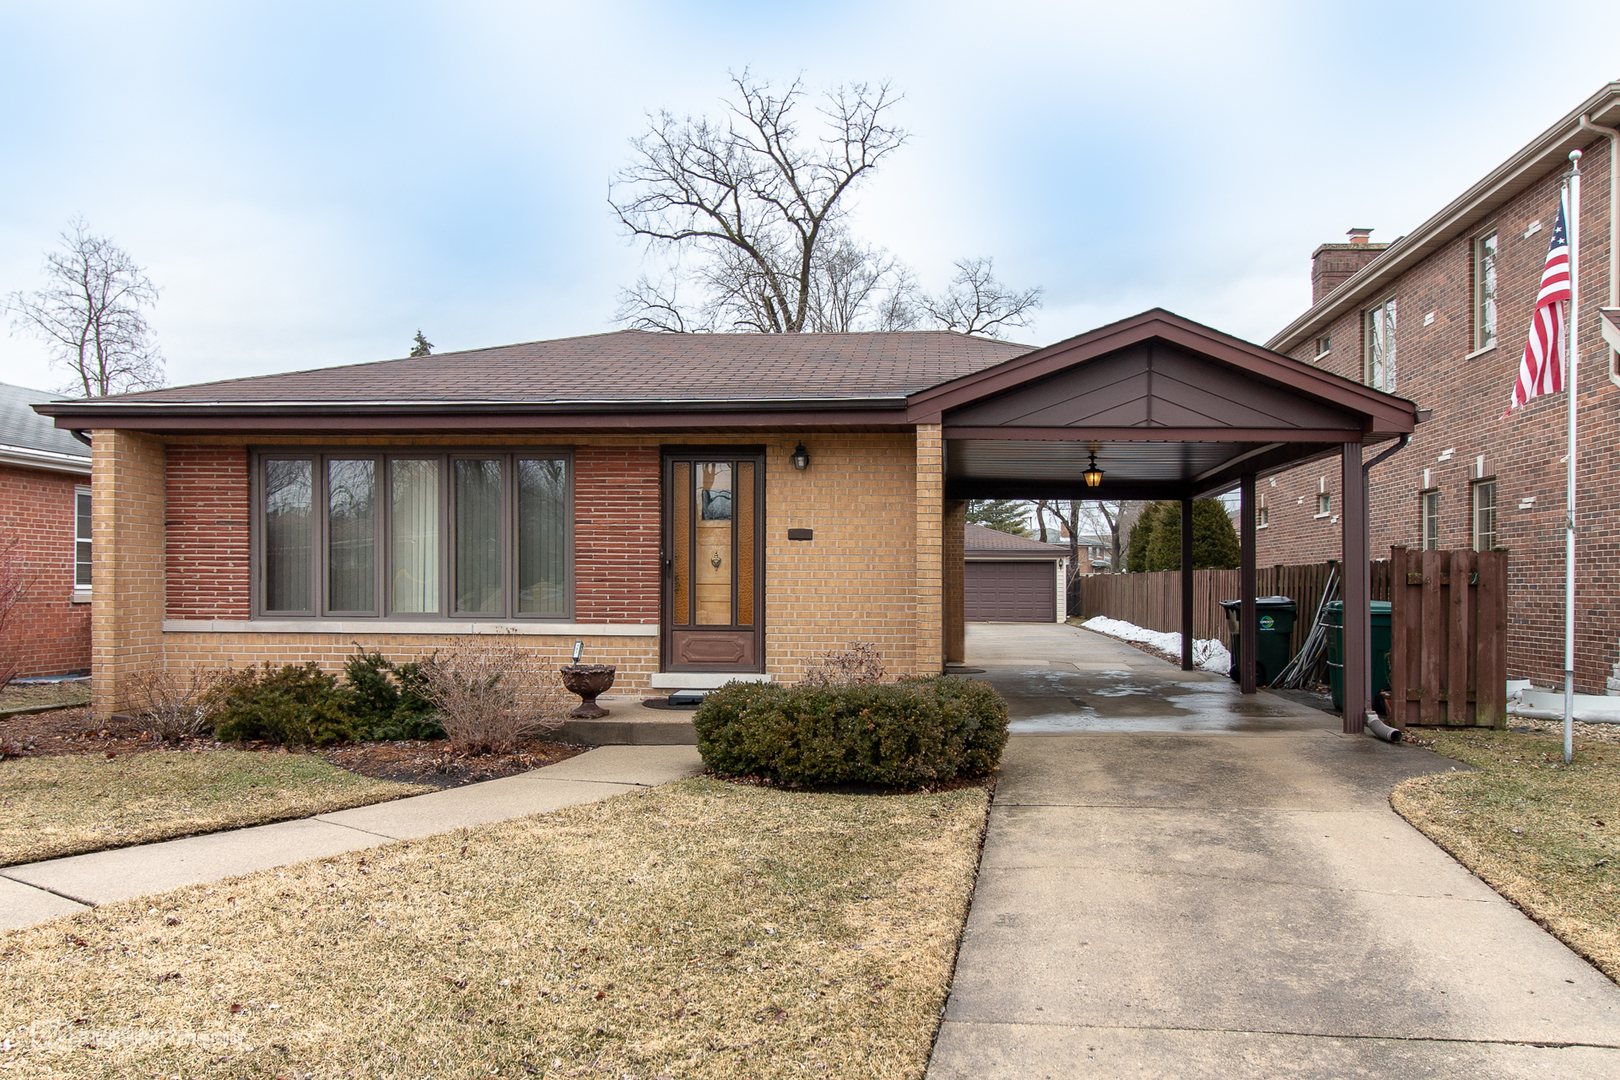 737 North Seminary Avenue, Park Ridge in Cook County, IL 60068 Home for Sale